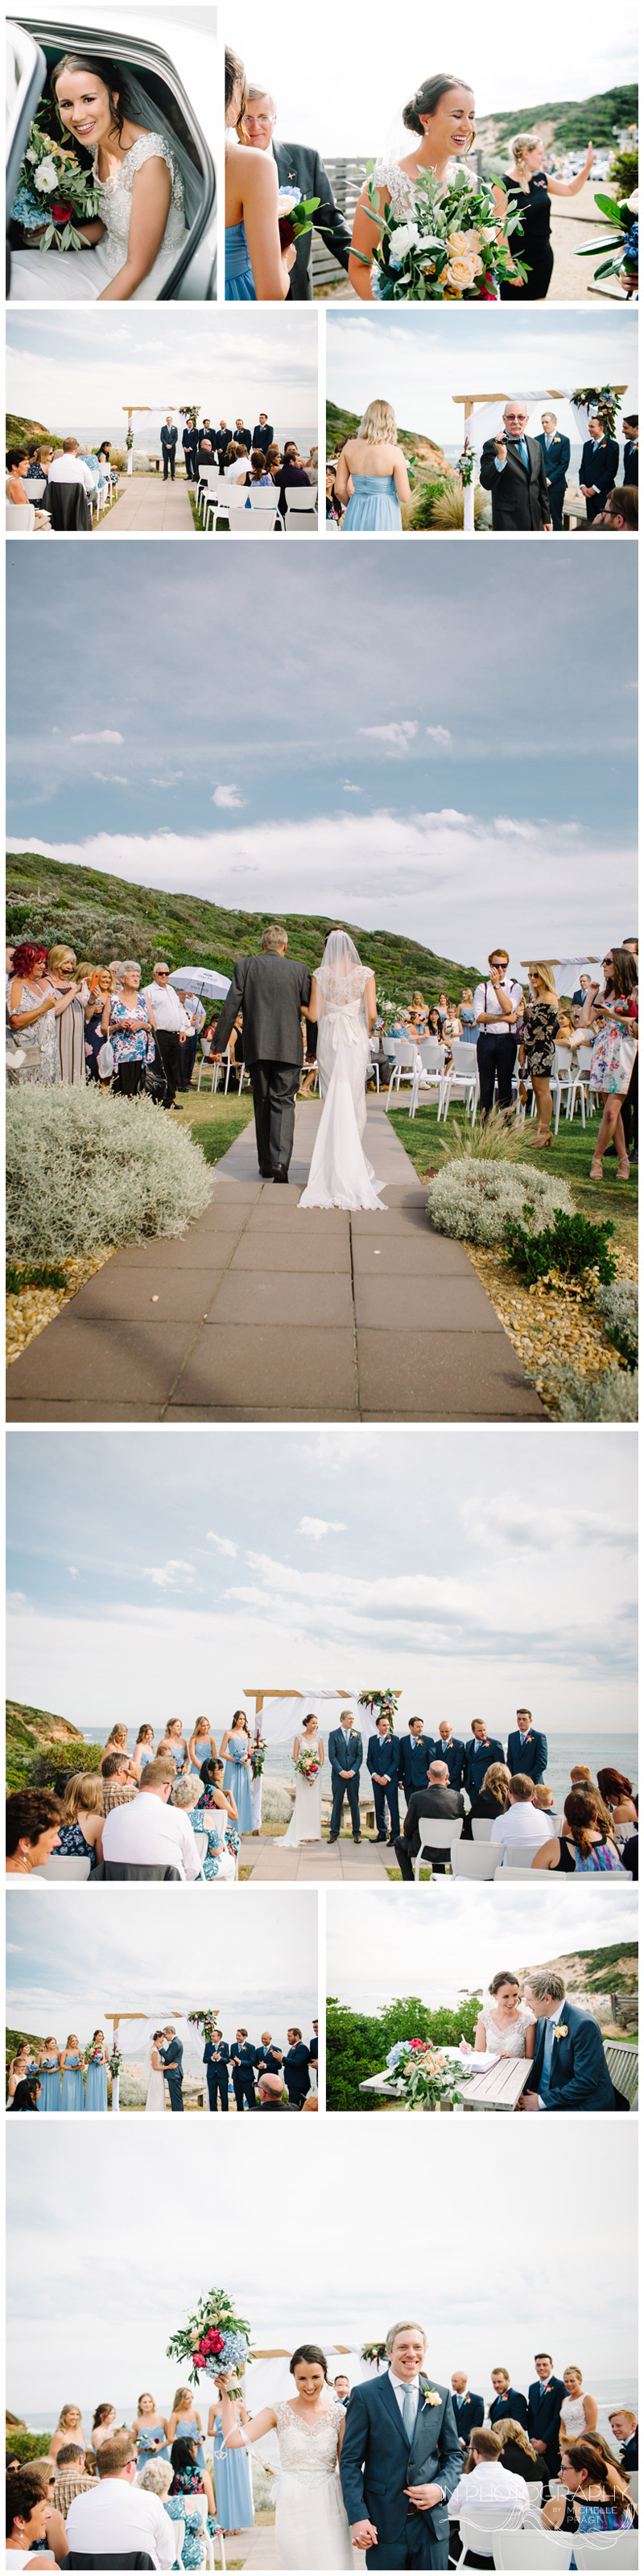 Mornington Peninsula wedding ceremony